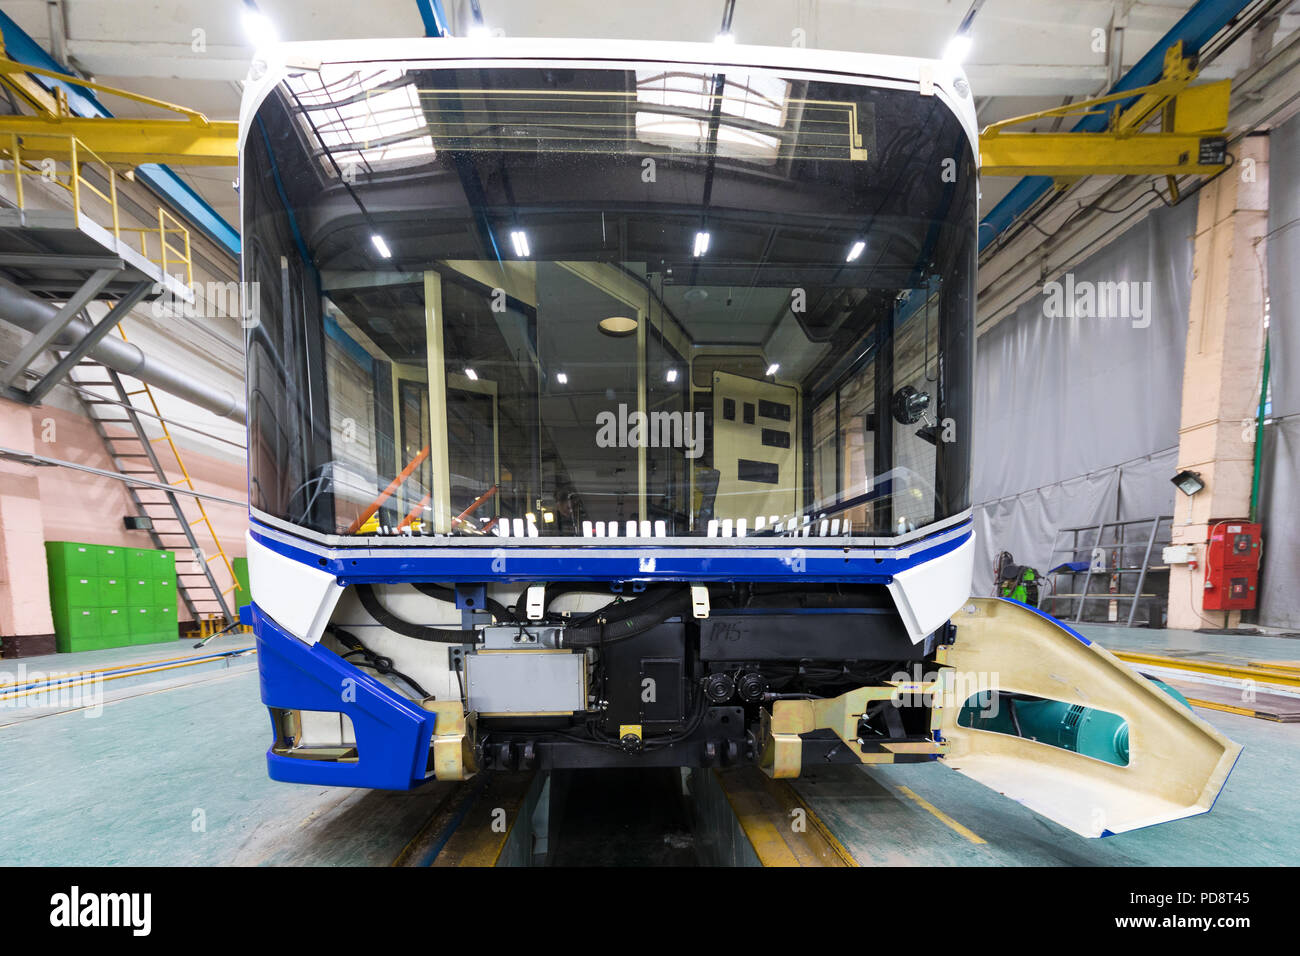 Trolleybus production line - Stock Image